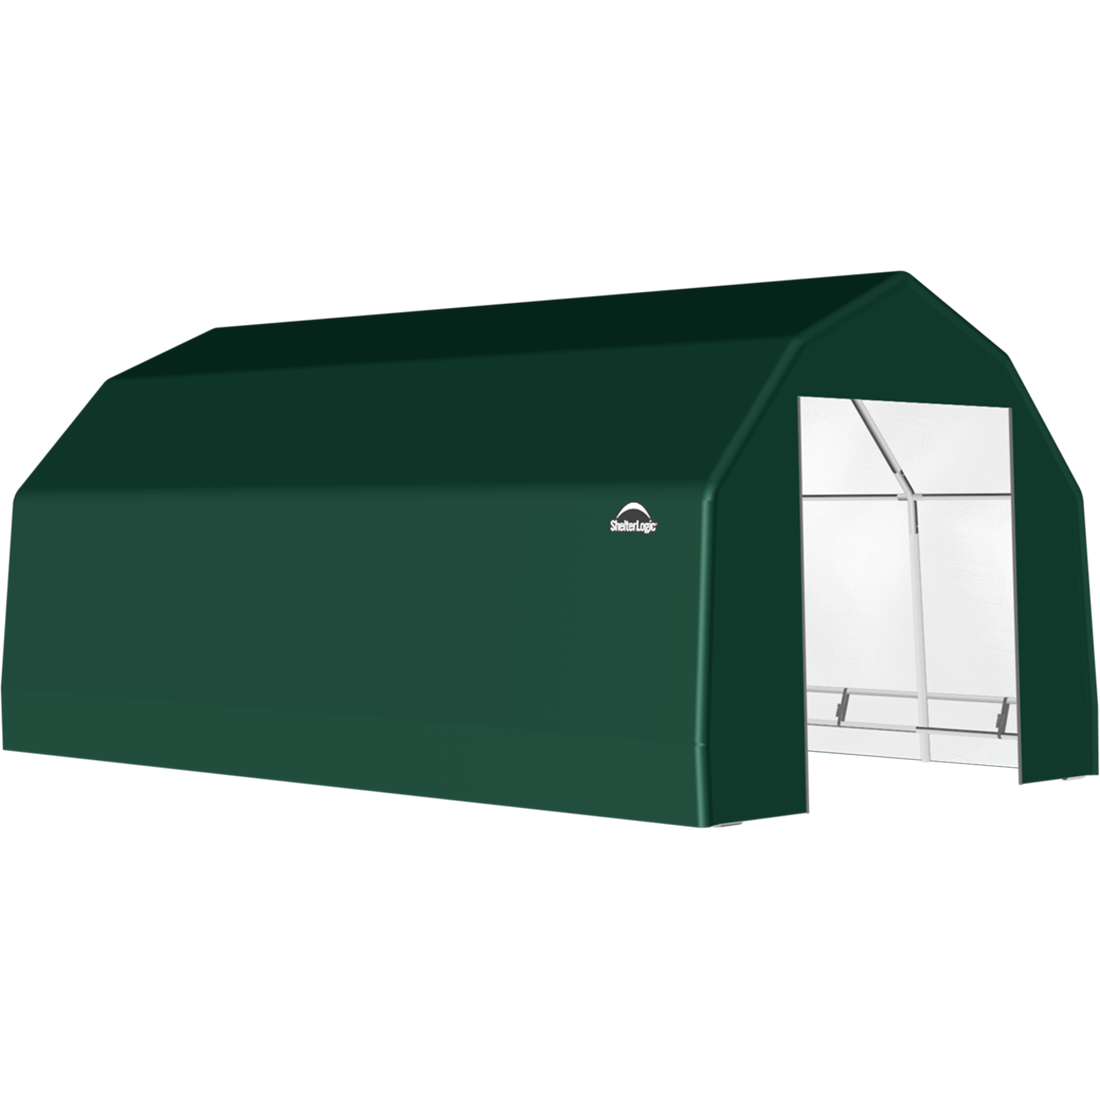 SP Barn 15X28X11 Green 14 oz PE Shelter